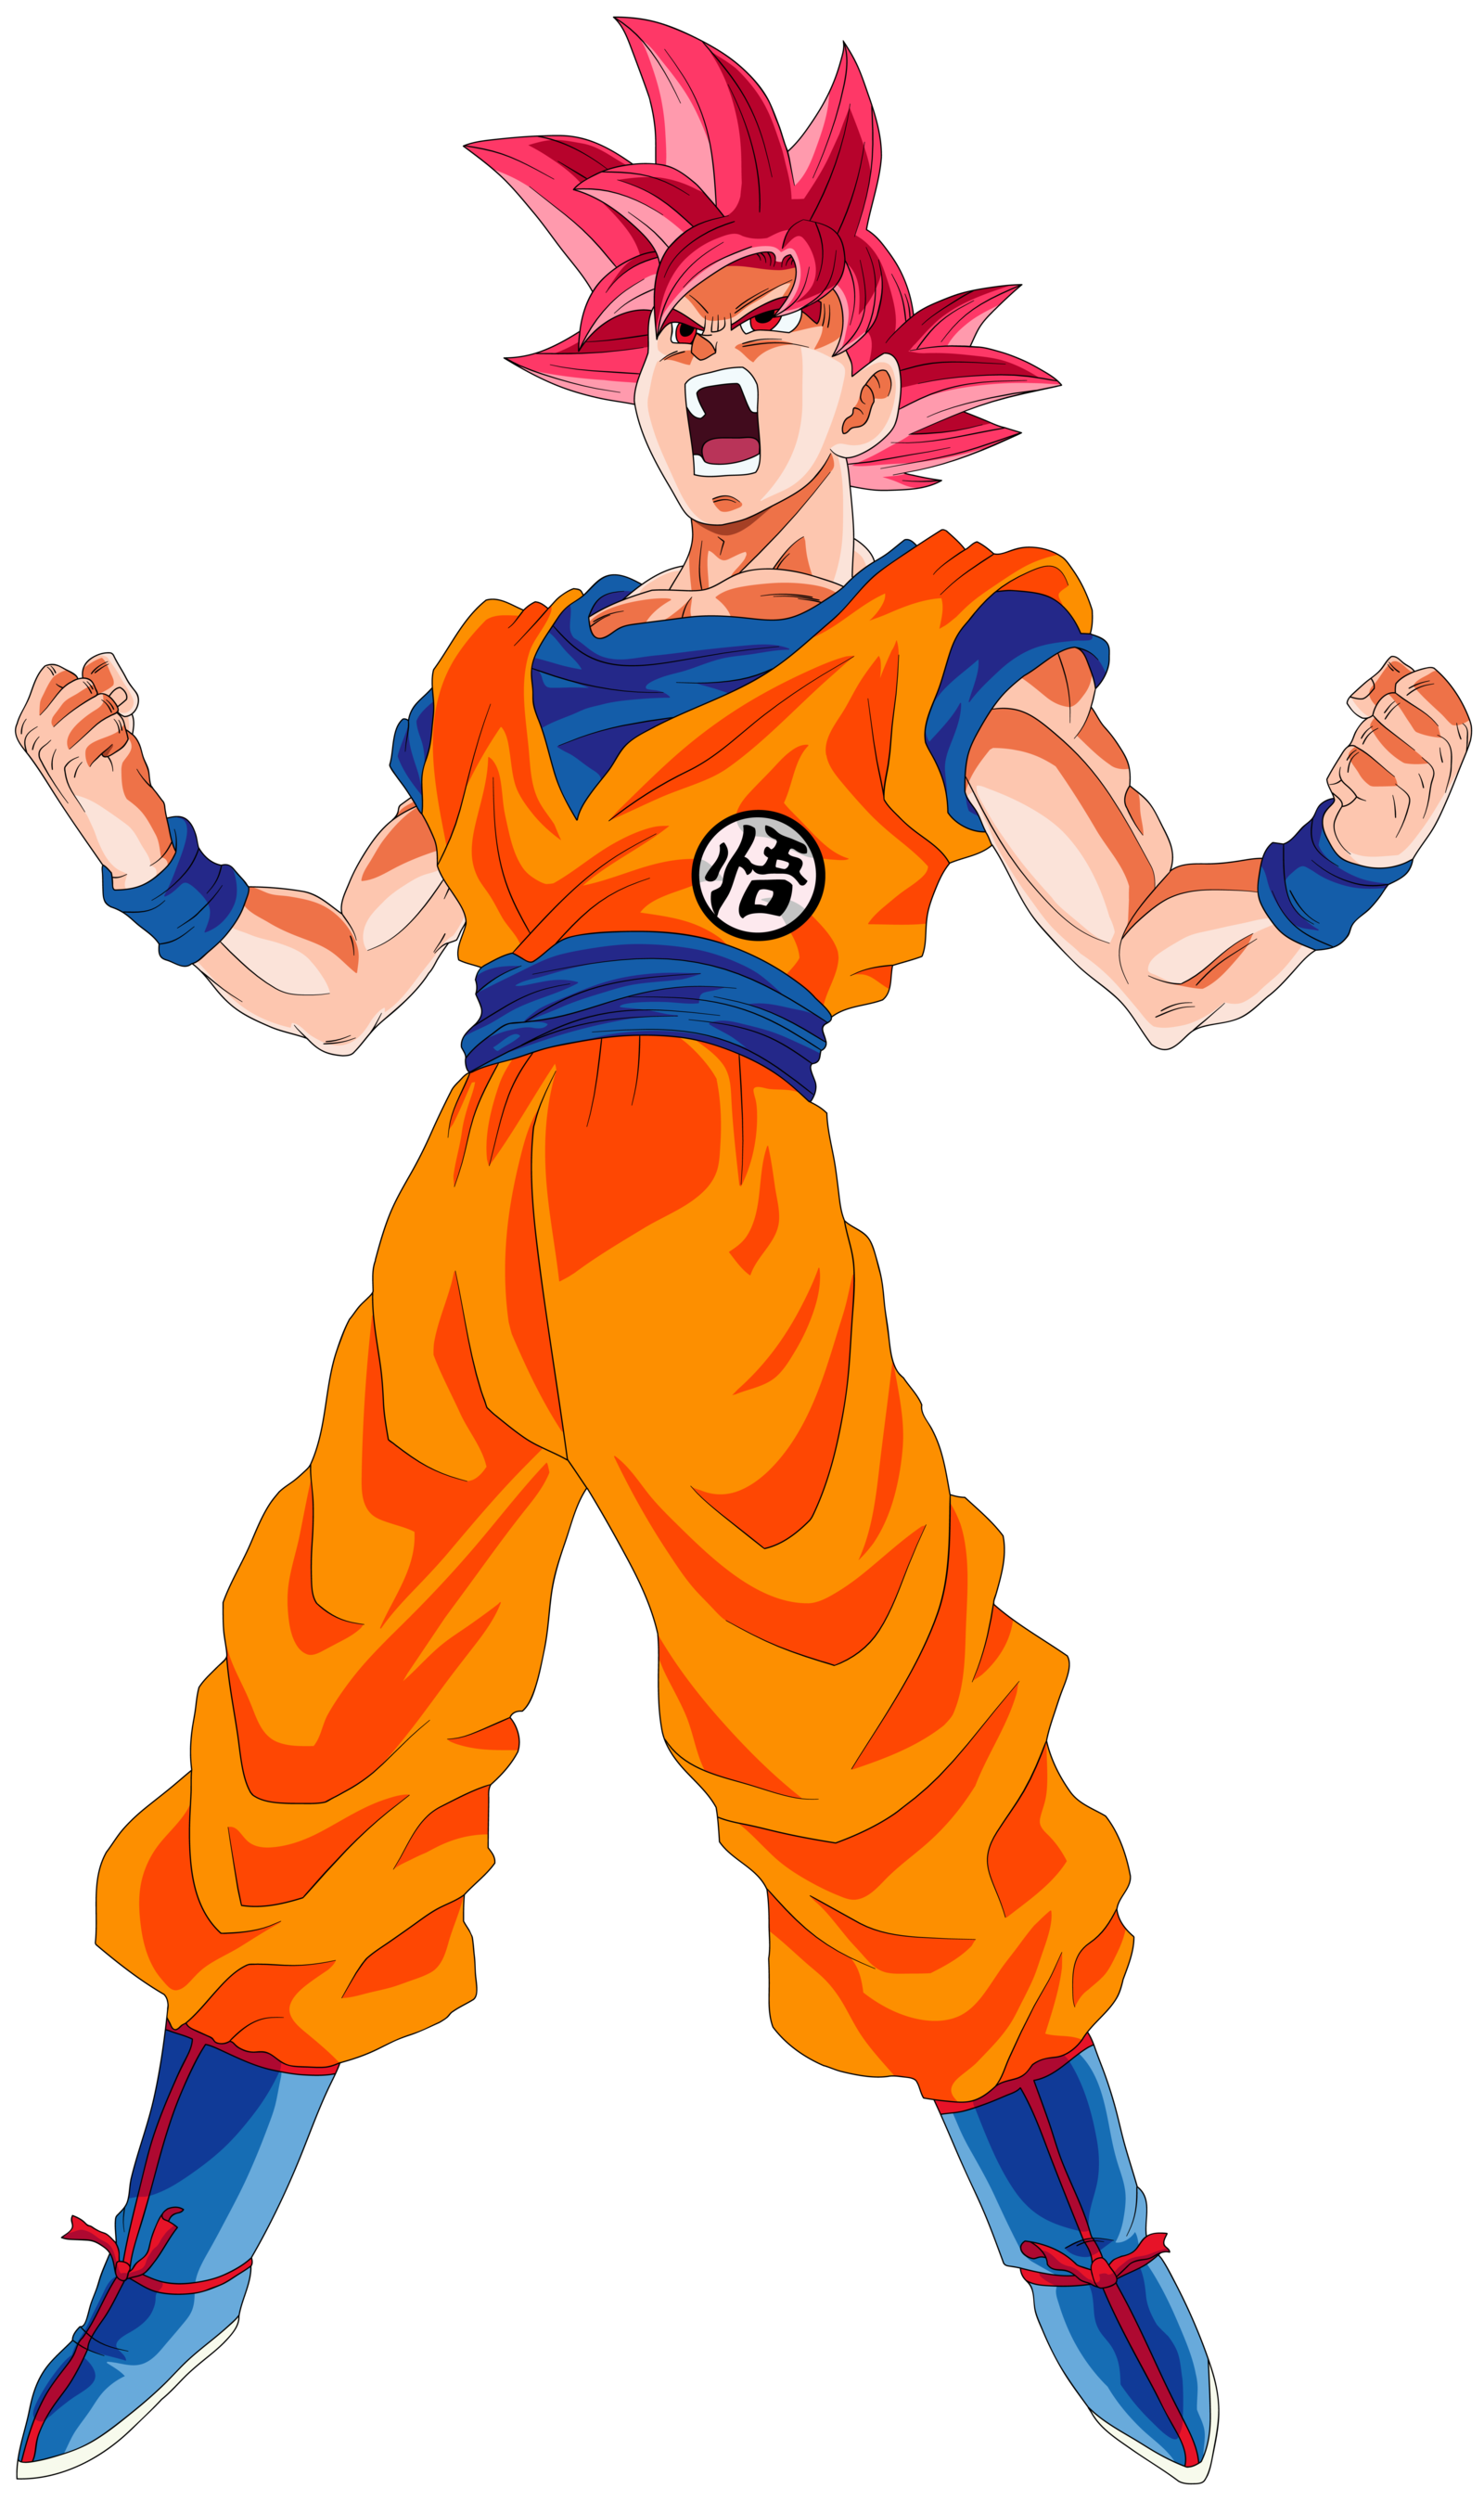 Image god power up. Super saiyan blue goku png jpg black and white download